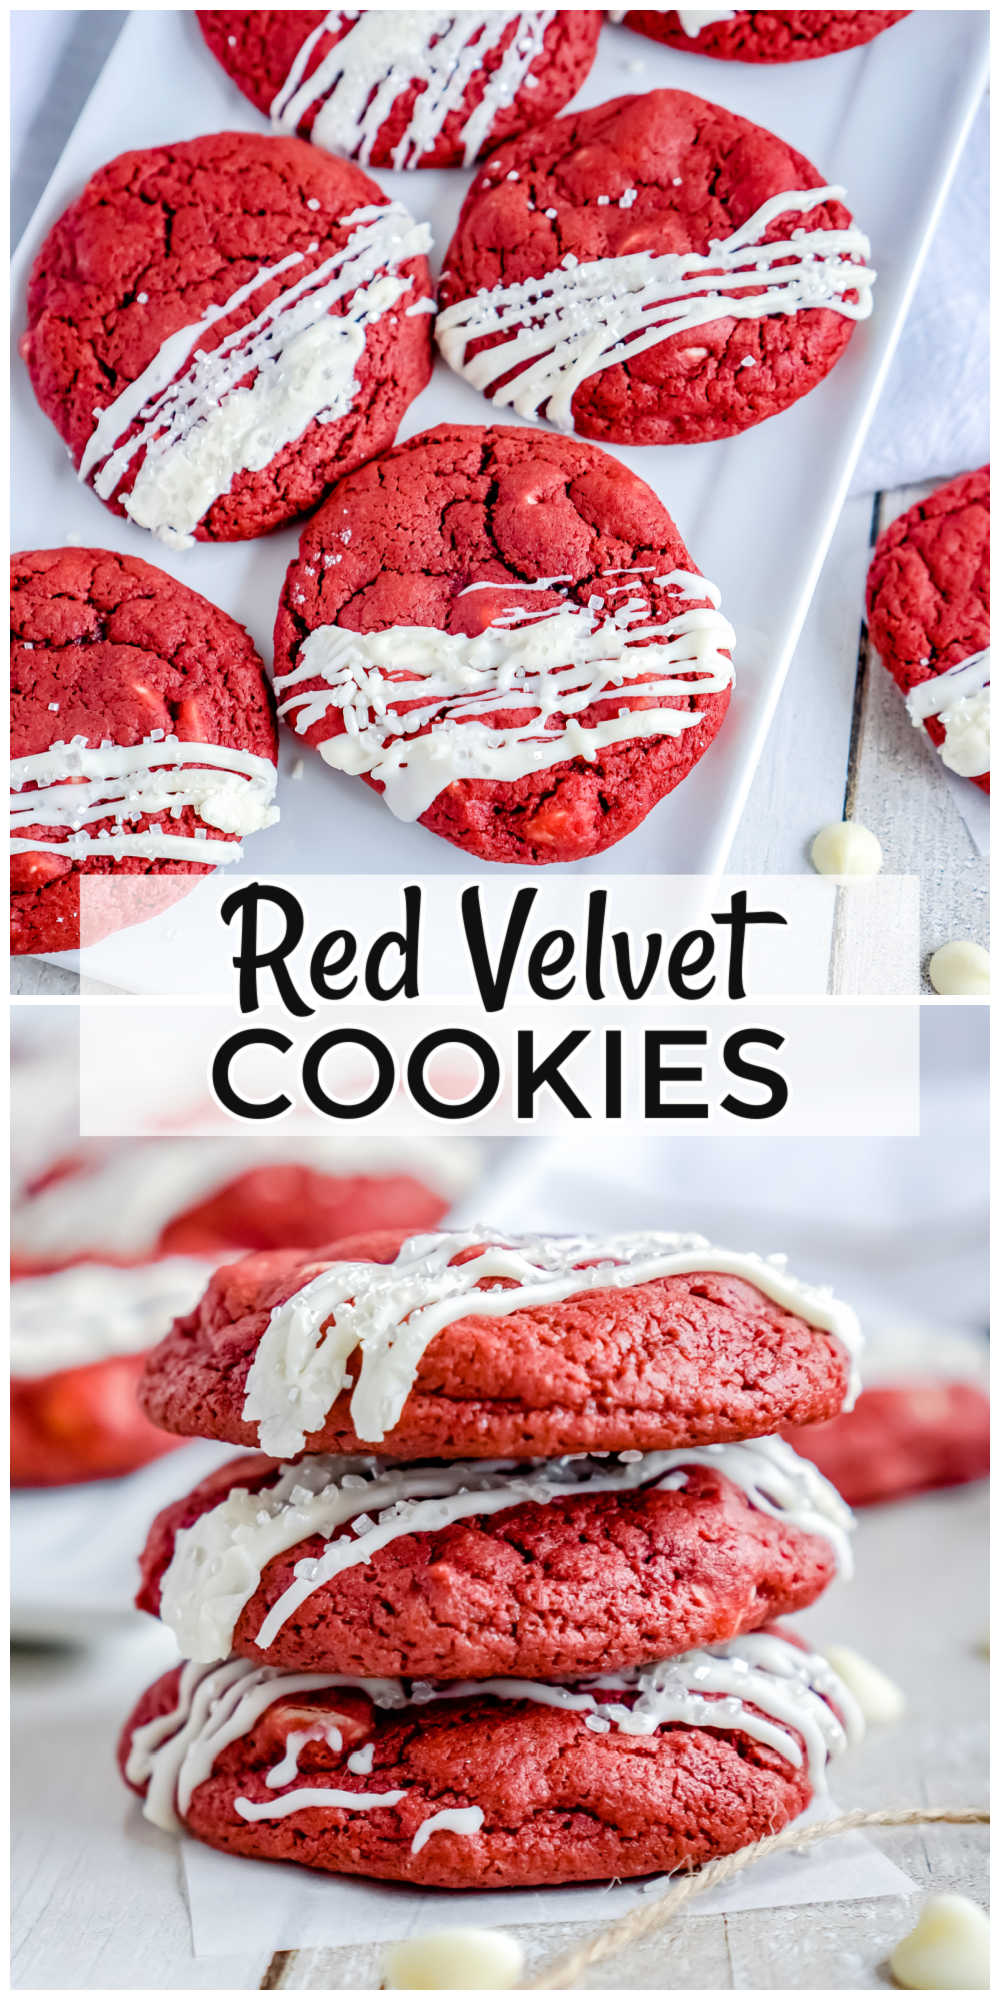 These Red Velvet Cookies with White Chocolate Chips are soft and chewy in the center and crisp around the edges. They're finished with frosting and seasonal sprinkles. via @foodfolksandfun